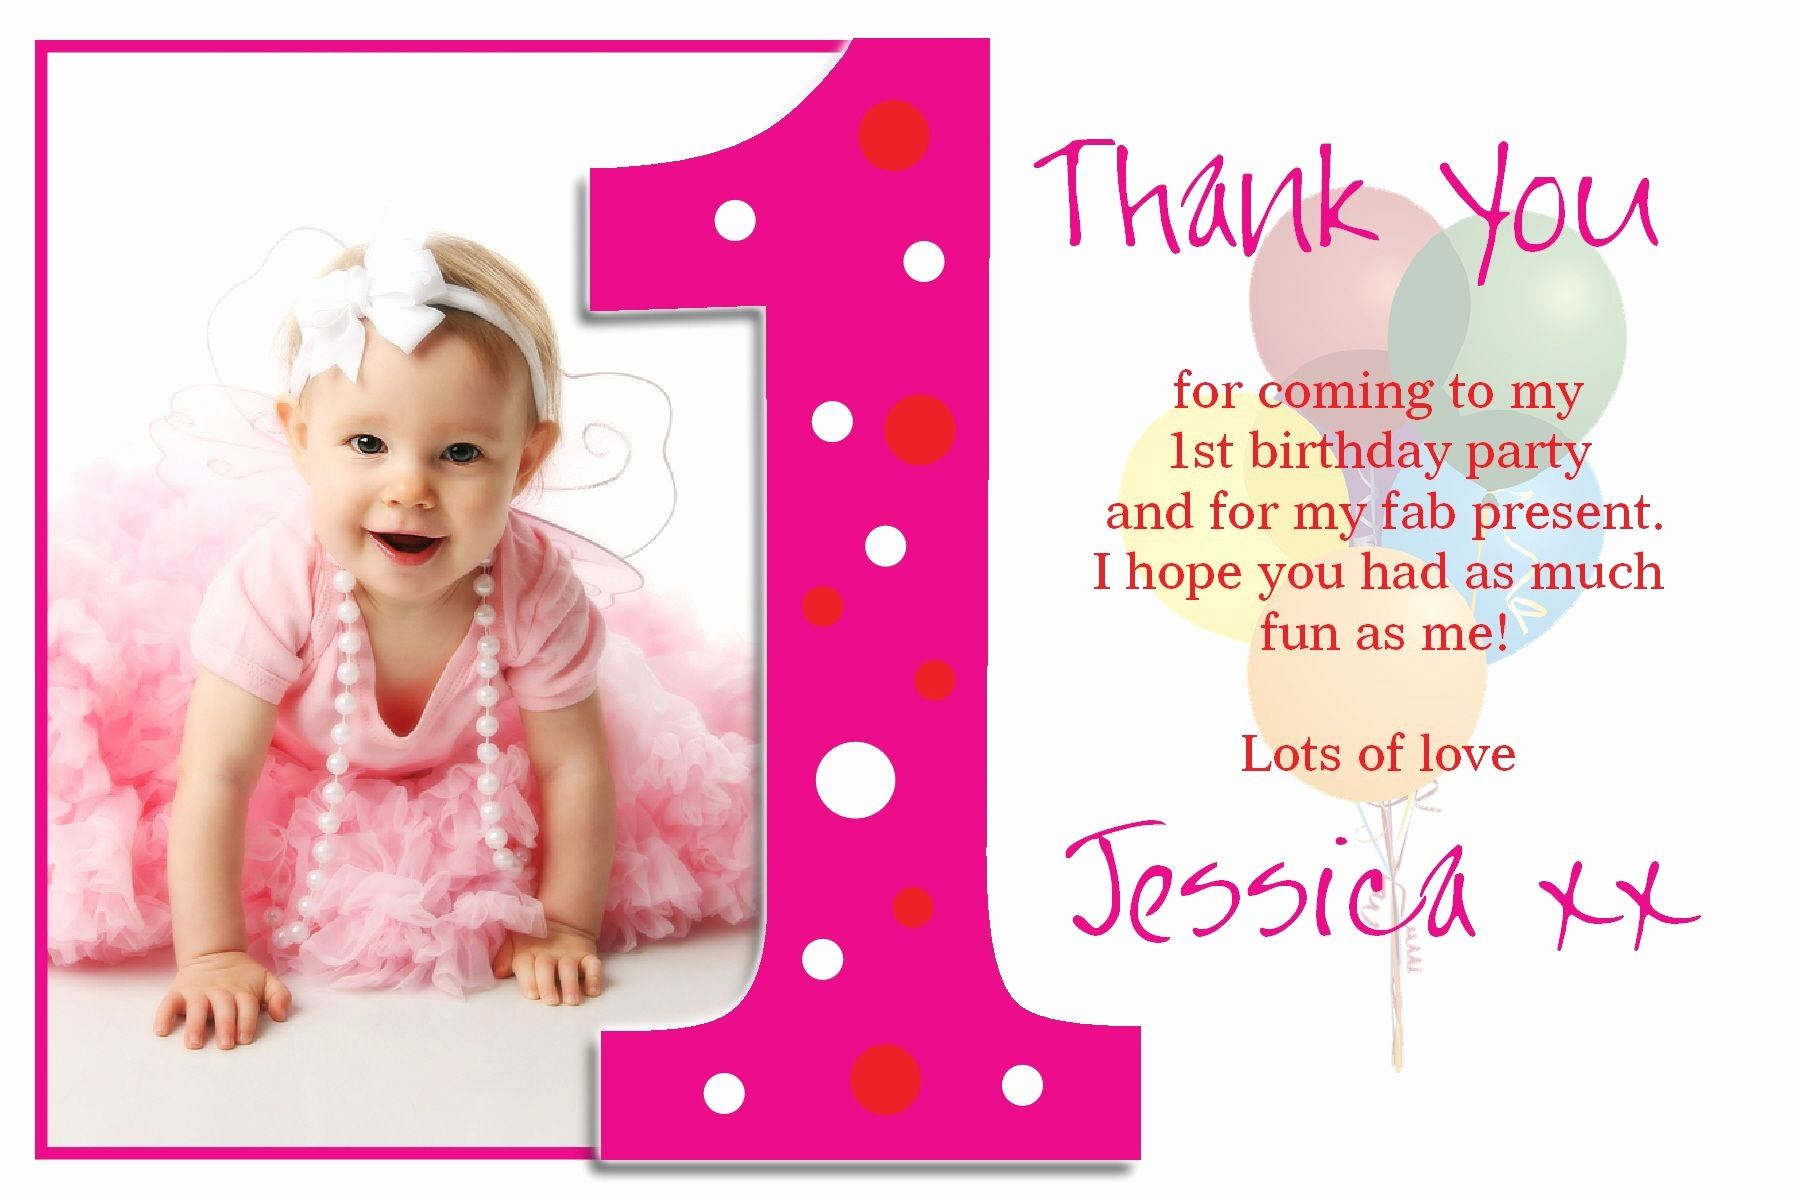 first birthday wishes greeting cards ; baby-thank-you-card-messages-awesome-baby-first-birthday-quotes-elegant-wishes-quotes-blog-top-20-1st-of-baby-thank-you-card-messages